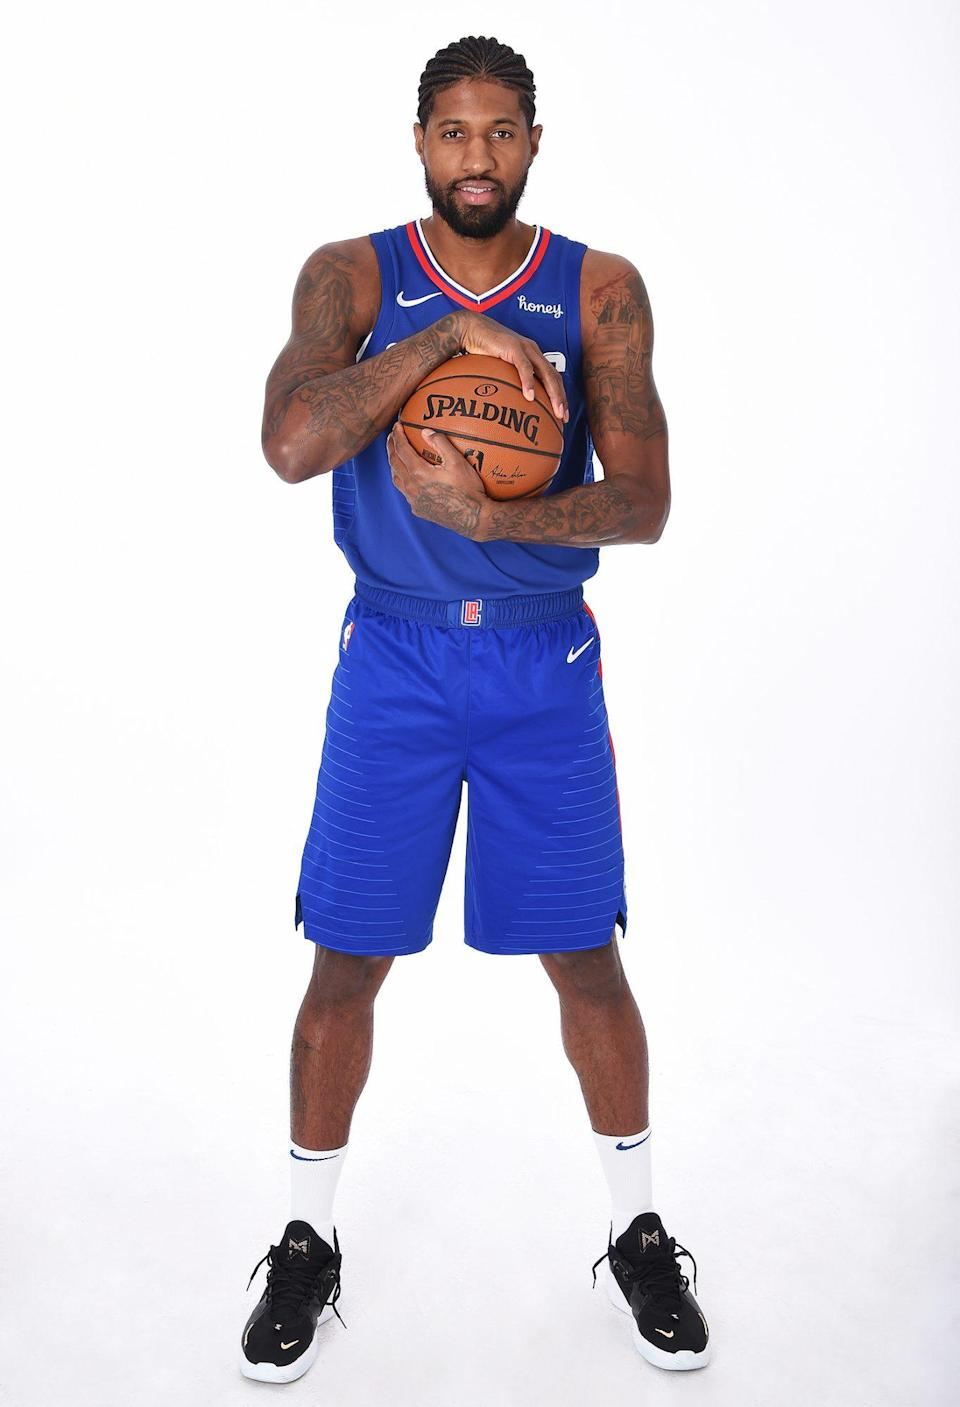 <p>George, who plays for the Los Angeles Clippers, is a seven-time All-Star like his Team LeBron teammate Stephen Curry.</p>